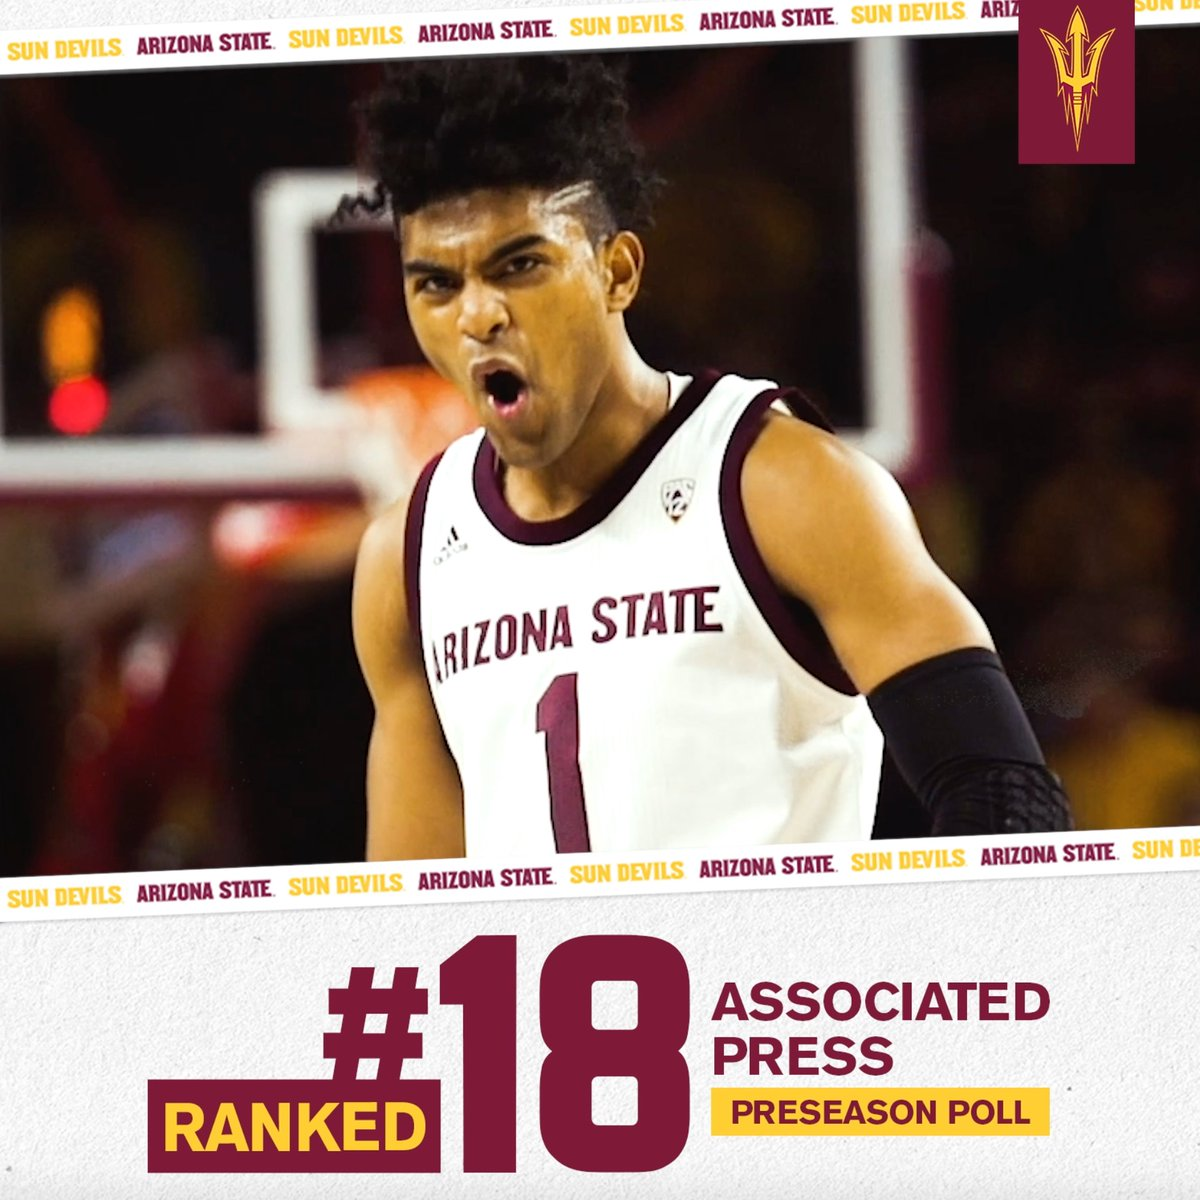 checking in at #18 ✅